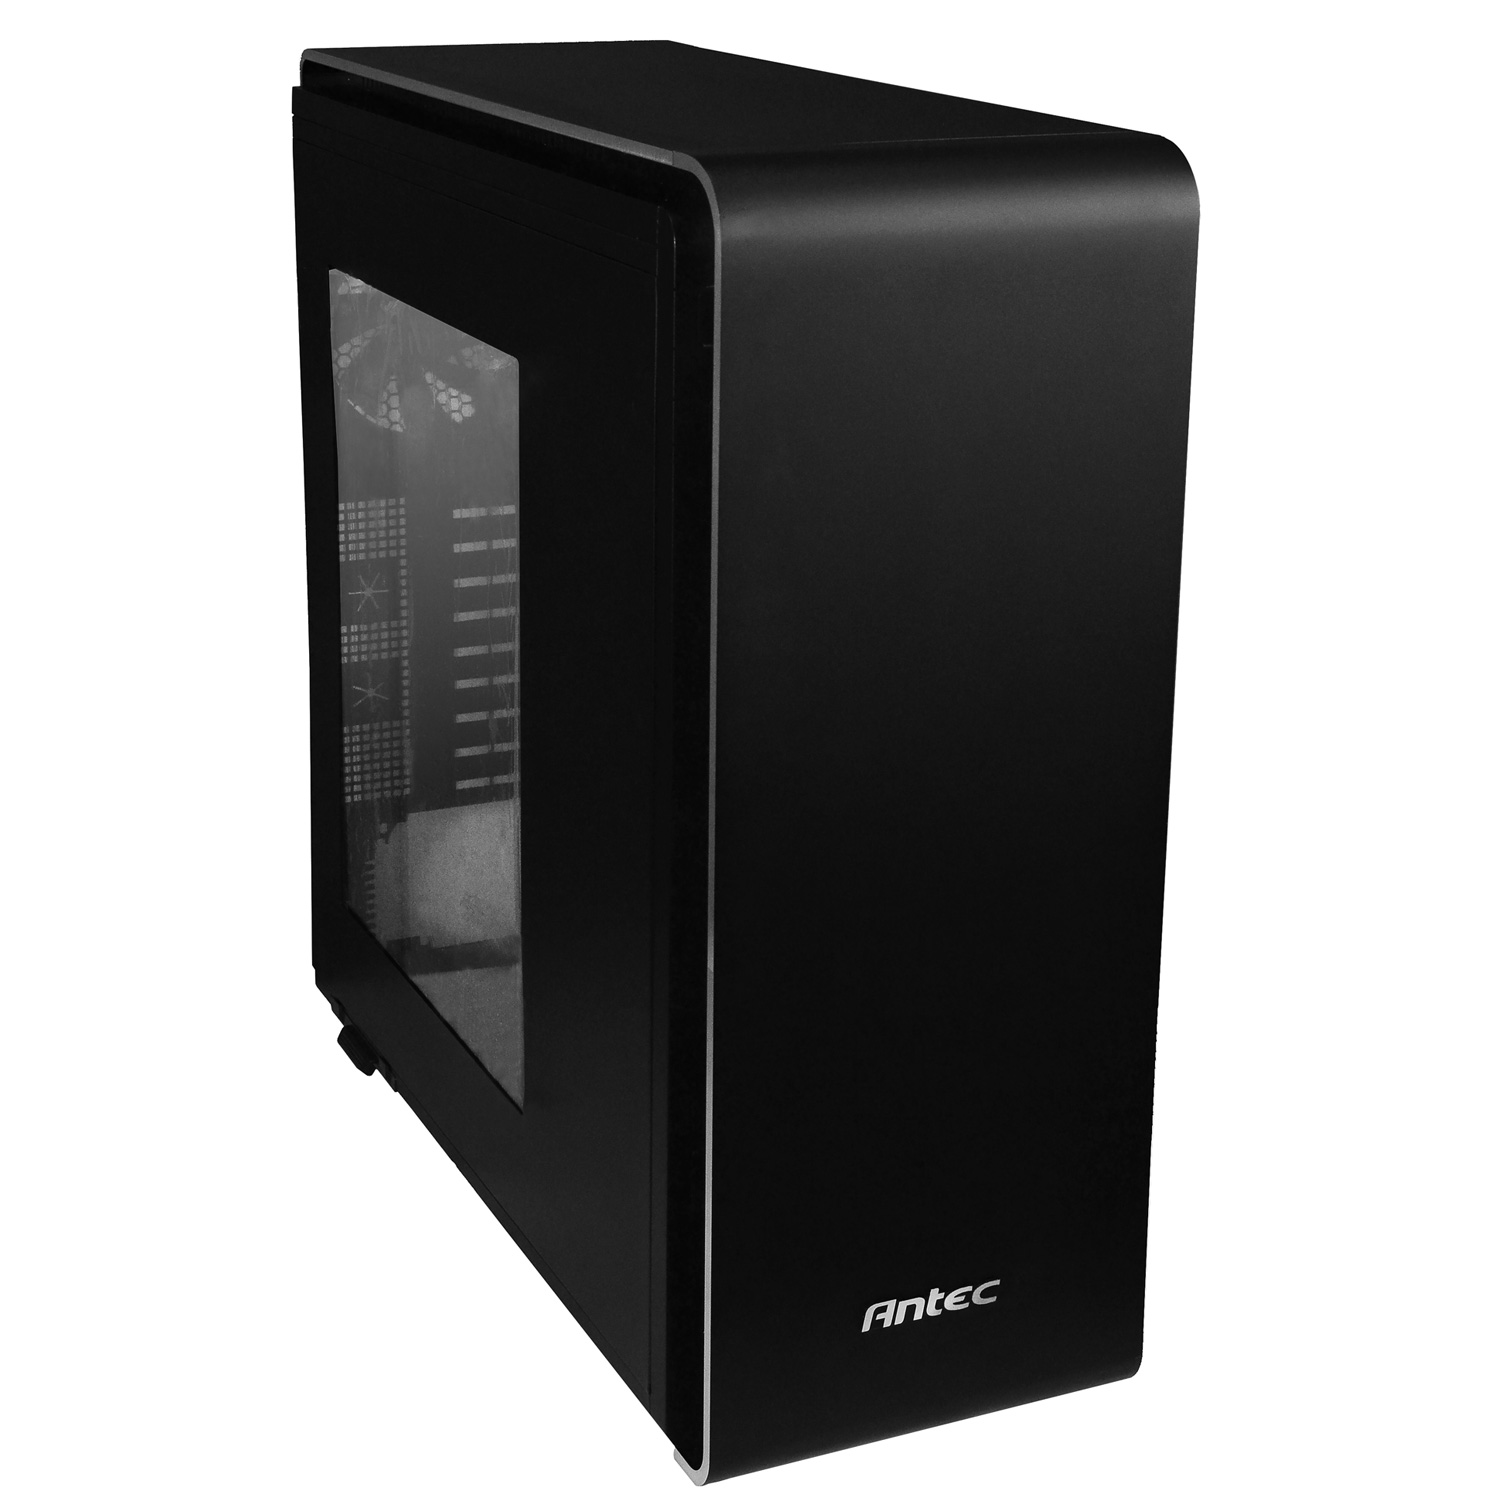 antec p380 bo tier pc antec sur. Black Bedroom Furniture Sets. Home Design Ideas